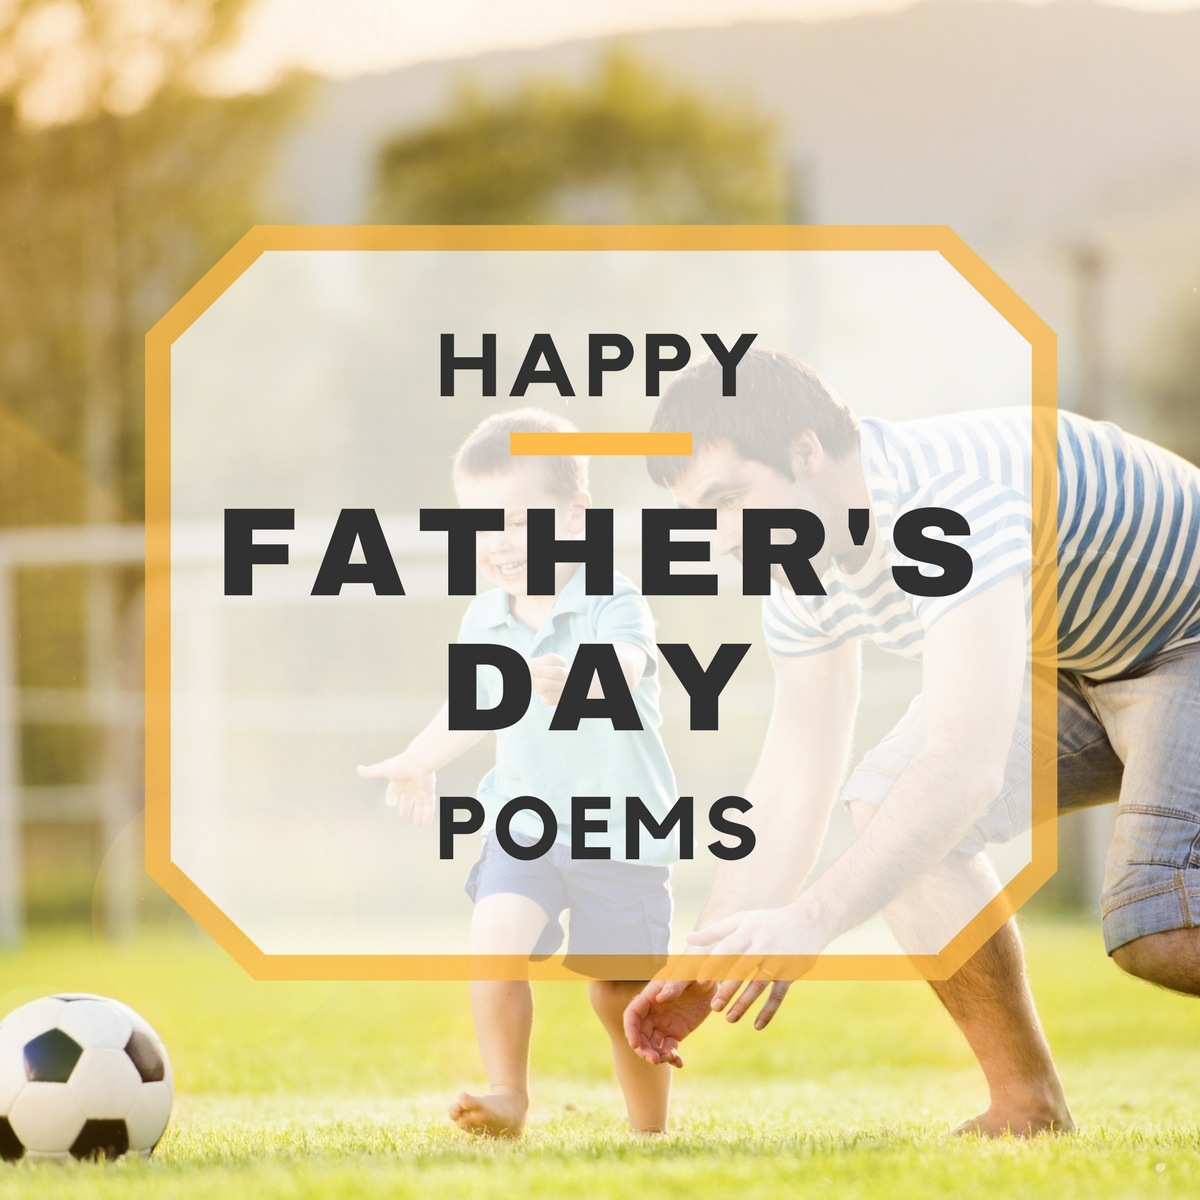 5 Happy Father's Day Poems